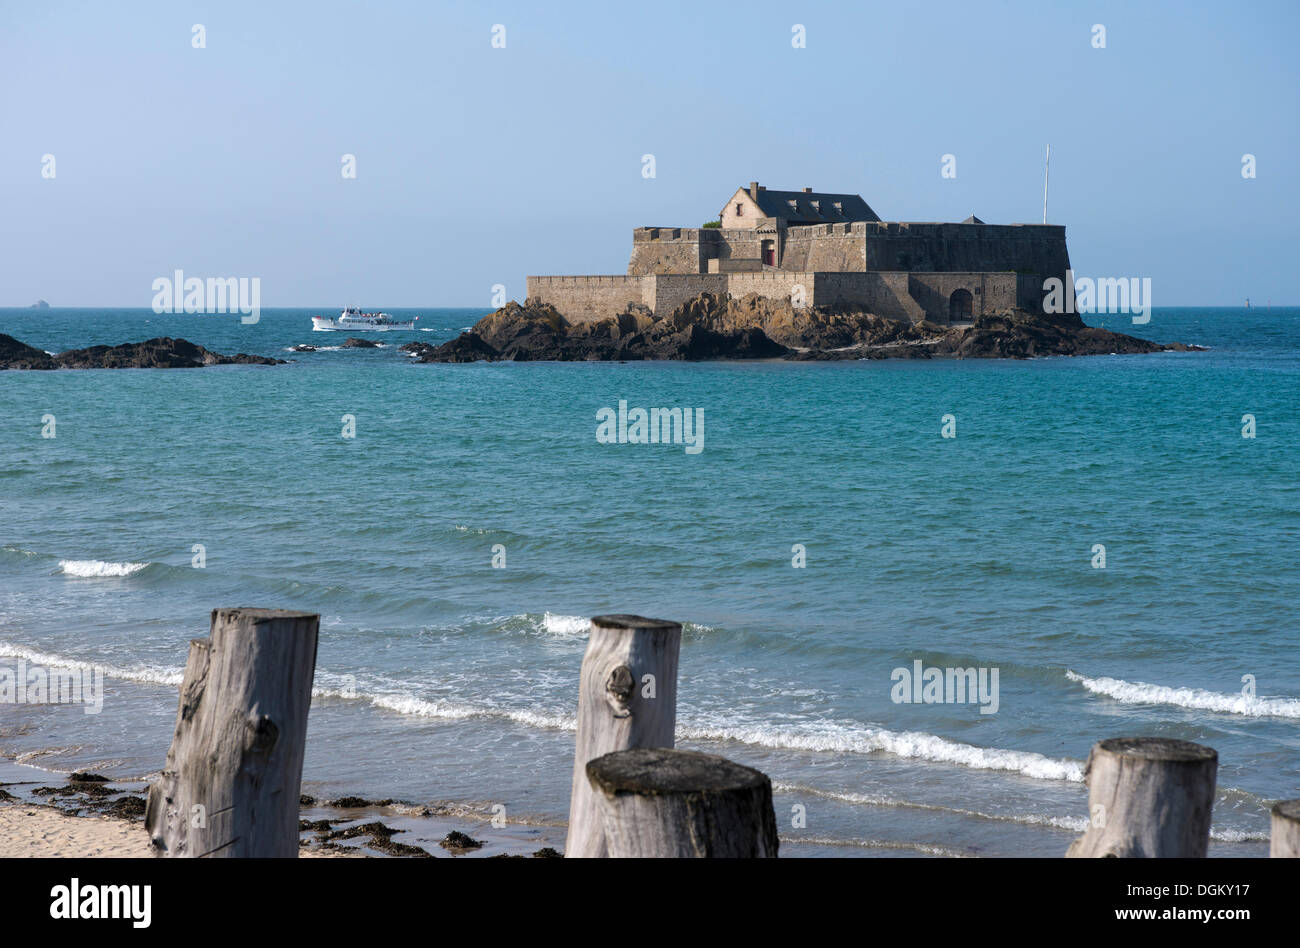 Fortified island in the sea, Saint-Malo, Brittany, France, Europe - Stock Image